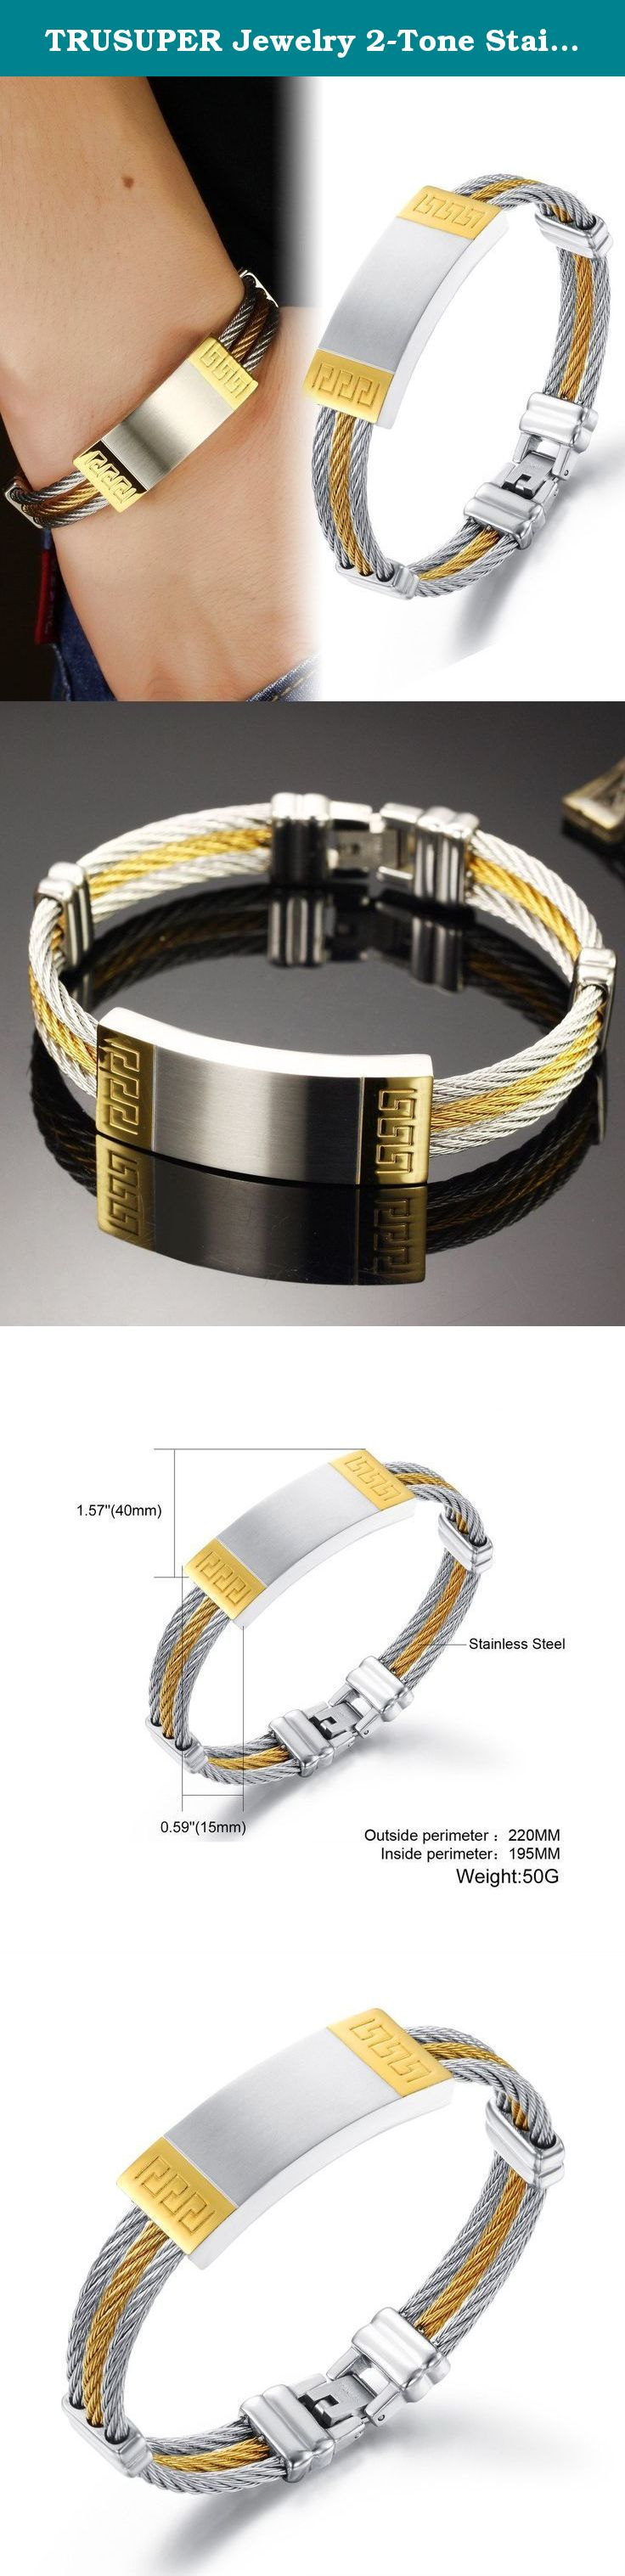 Trusuper jewelry tone stainless steel k gold plated mens bangle